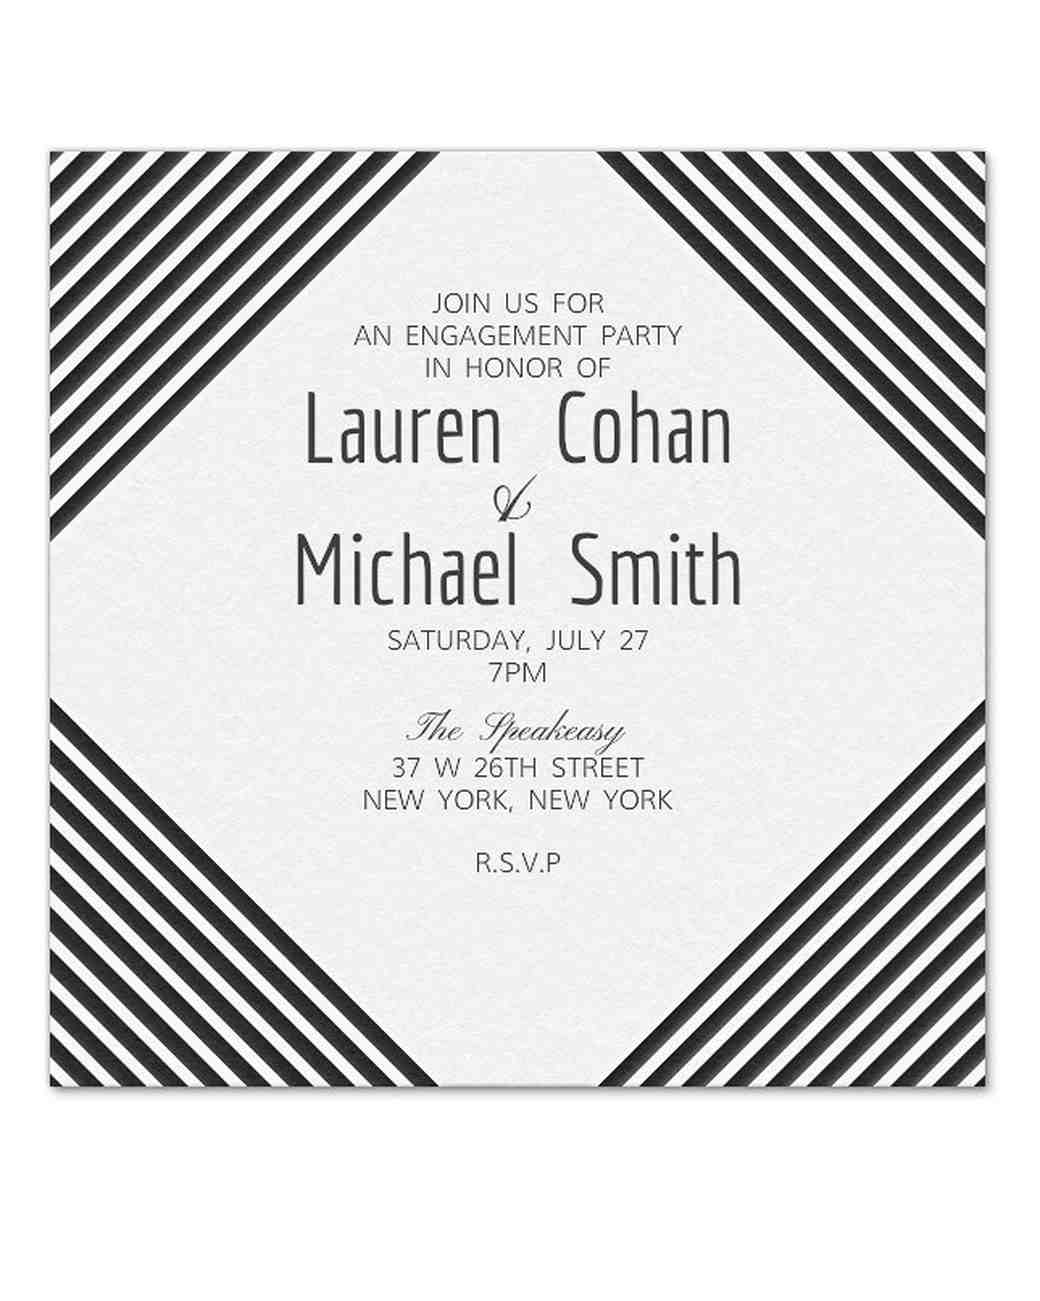 29 Paperless Engagement Party Invitations | Martha Stewart Weddings